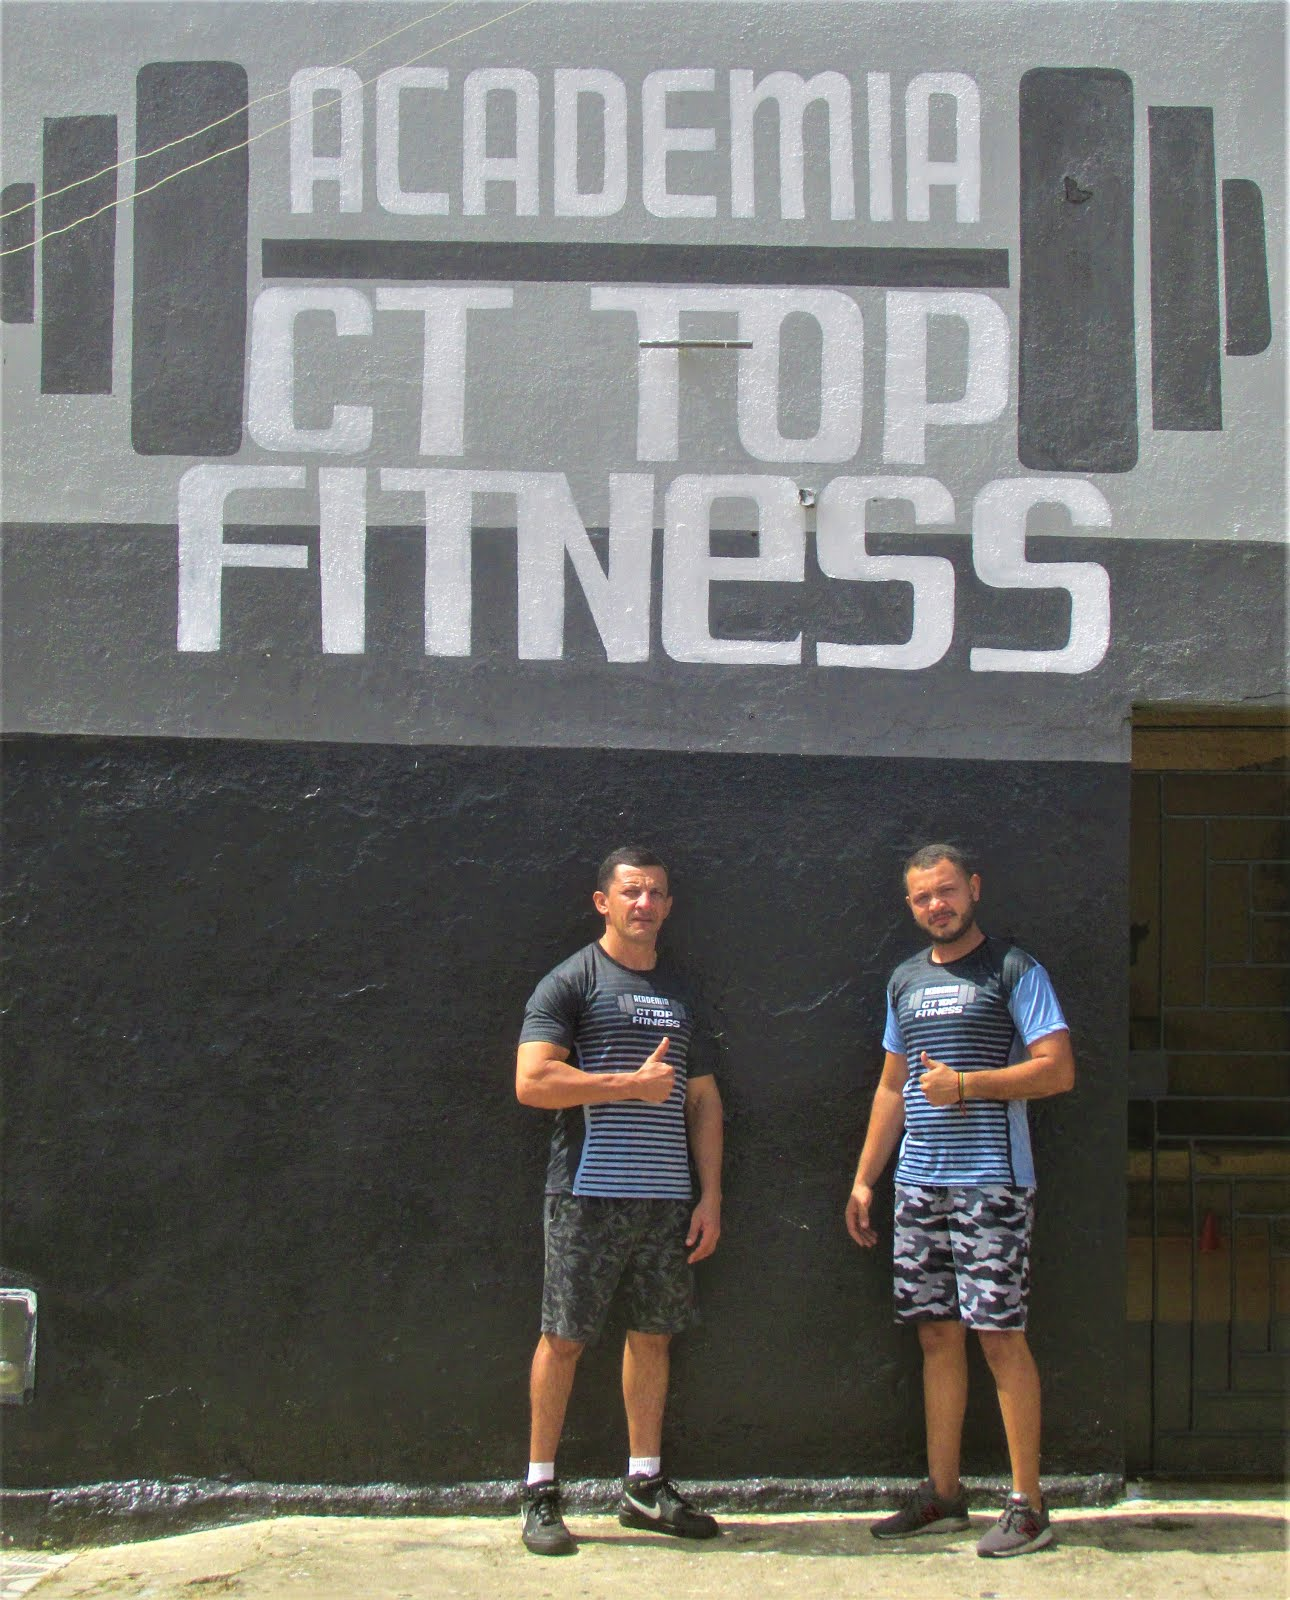 Academia CT Top Fitness